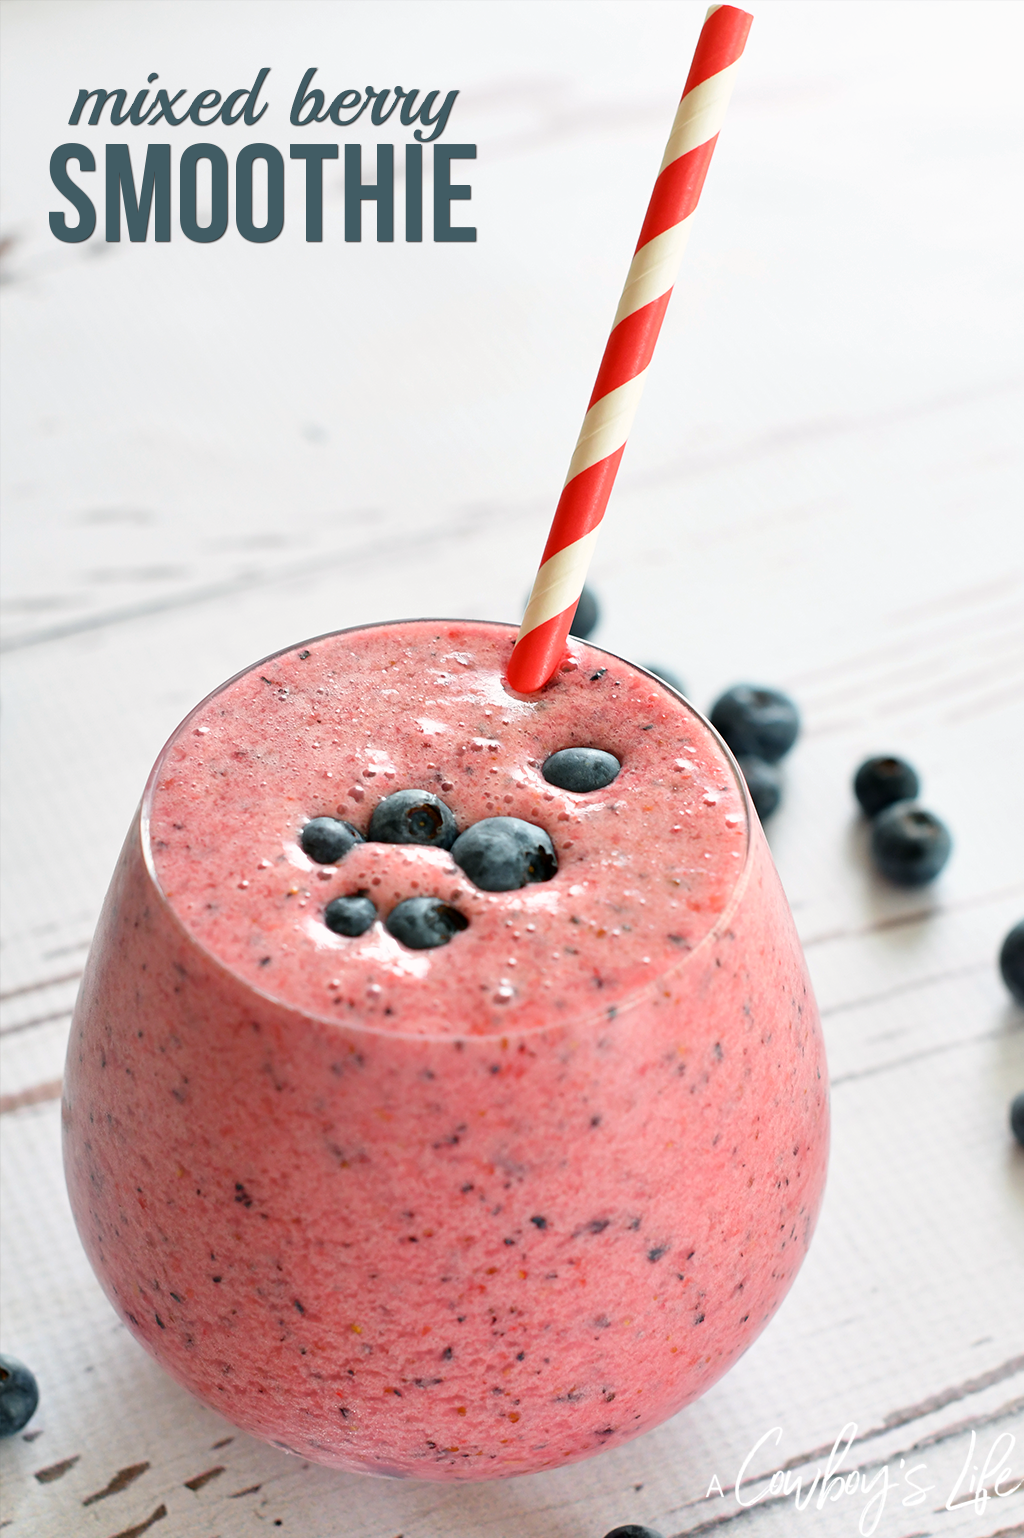 Keto friendly mixed berry smoothie